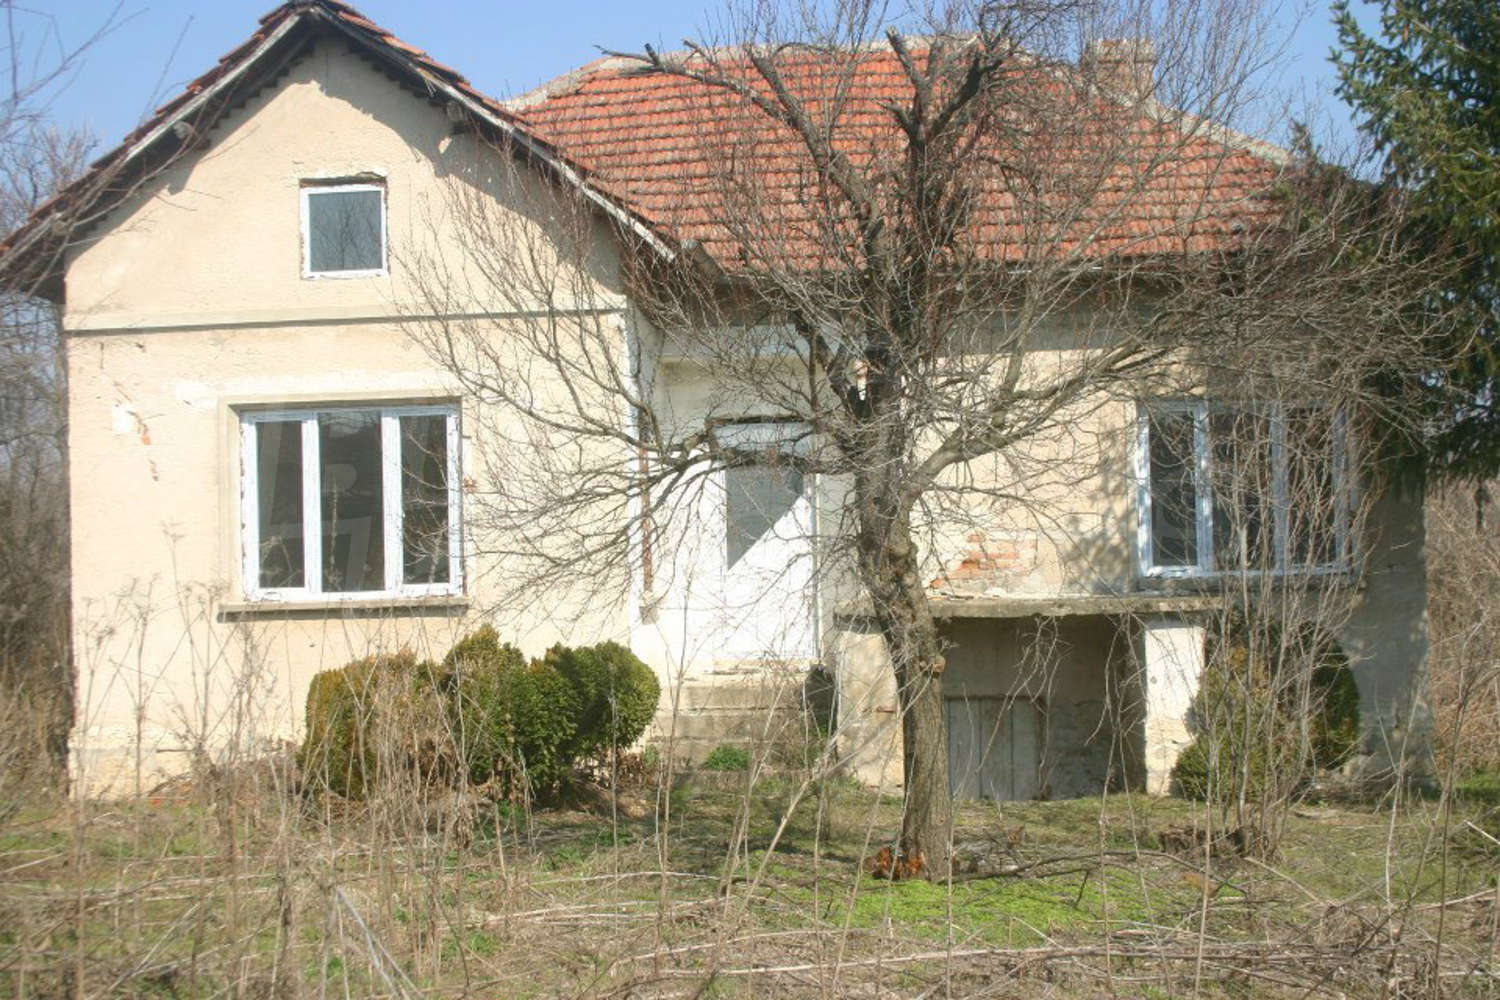 House for sale near vratsa bulgaria nice house with for Big nice houses for sale